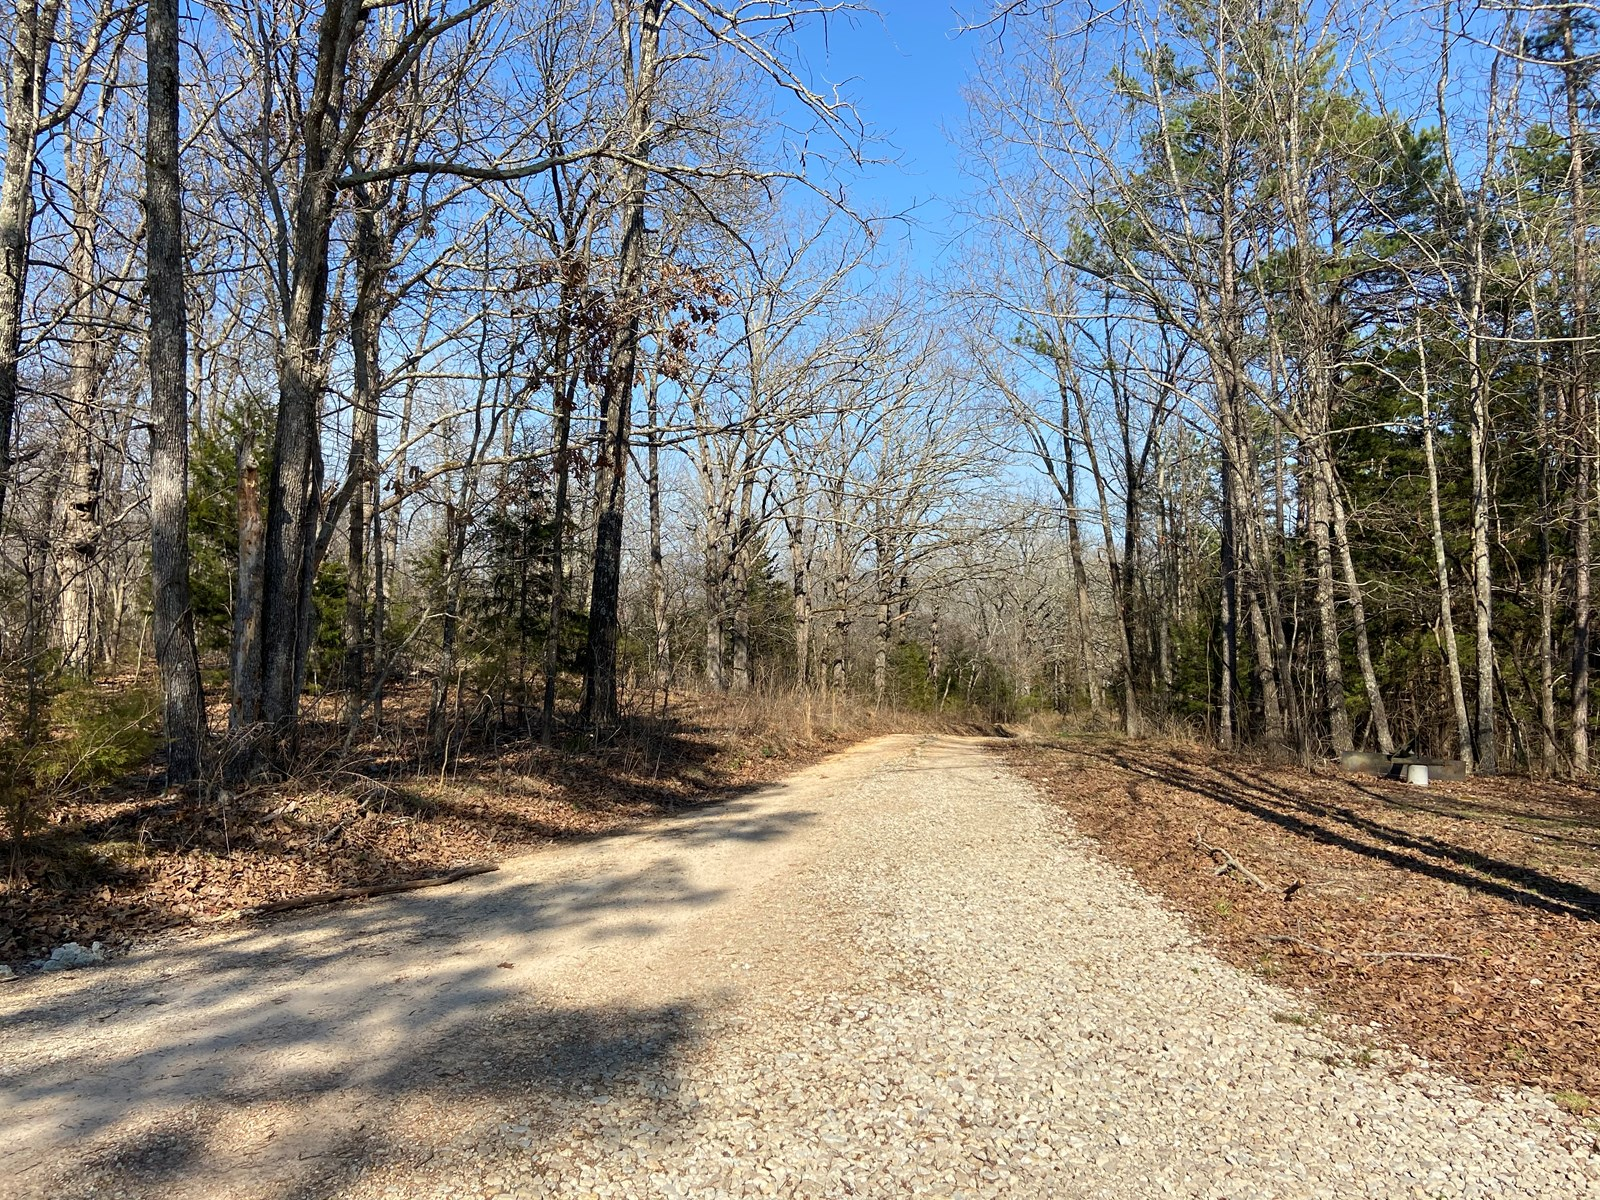 Land for Sale in South Central Missouri - Hunting Property